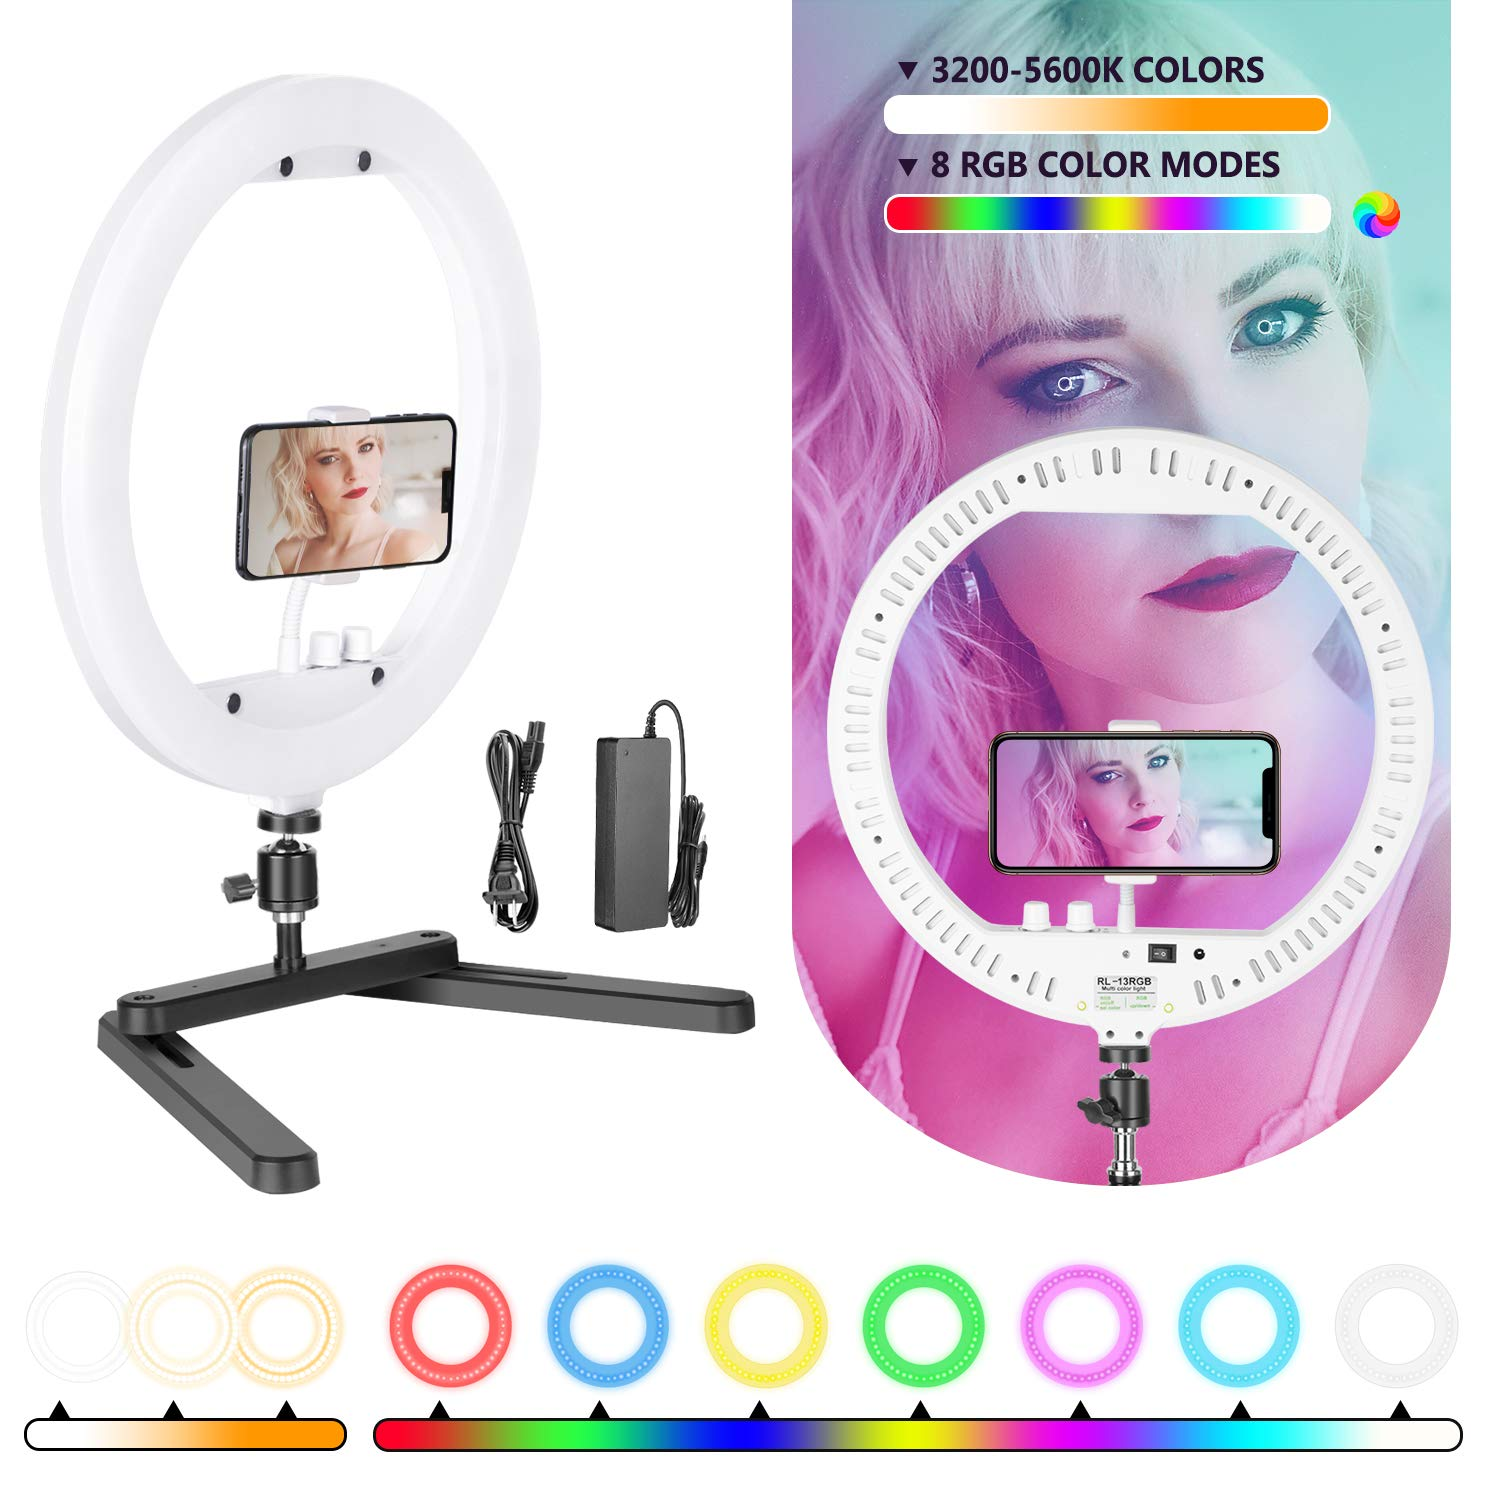 Neewer Ring Light, 13-inch RGB Dimmable LED Ring Light with Foldable Table-top Bracket/Phone Holder/Ball Head, 8 RGB Colors and 3200K-5600K Colors Desktop Ring Light for Selfie Makeup YouTube Video by Neewer